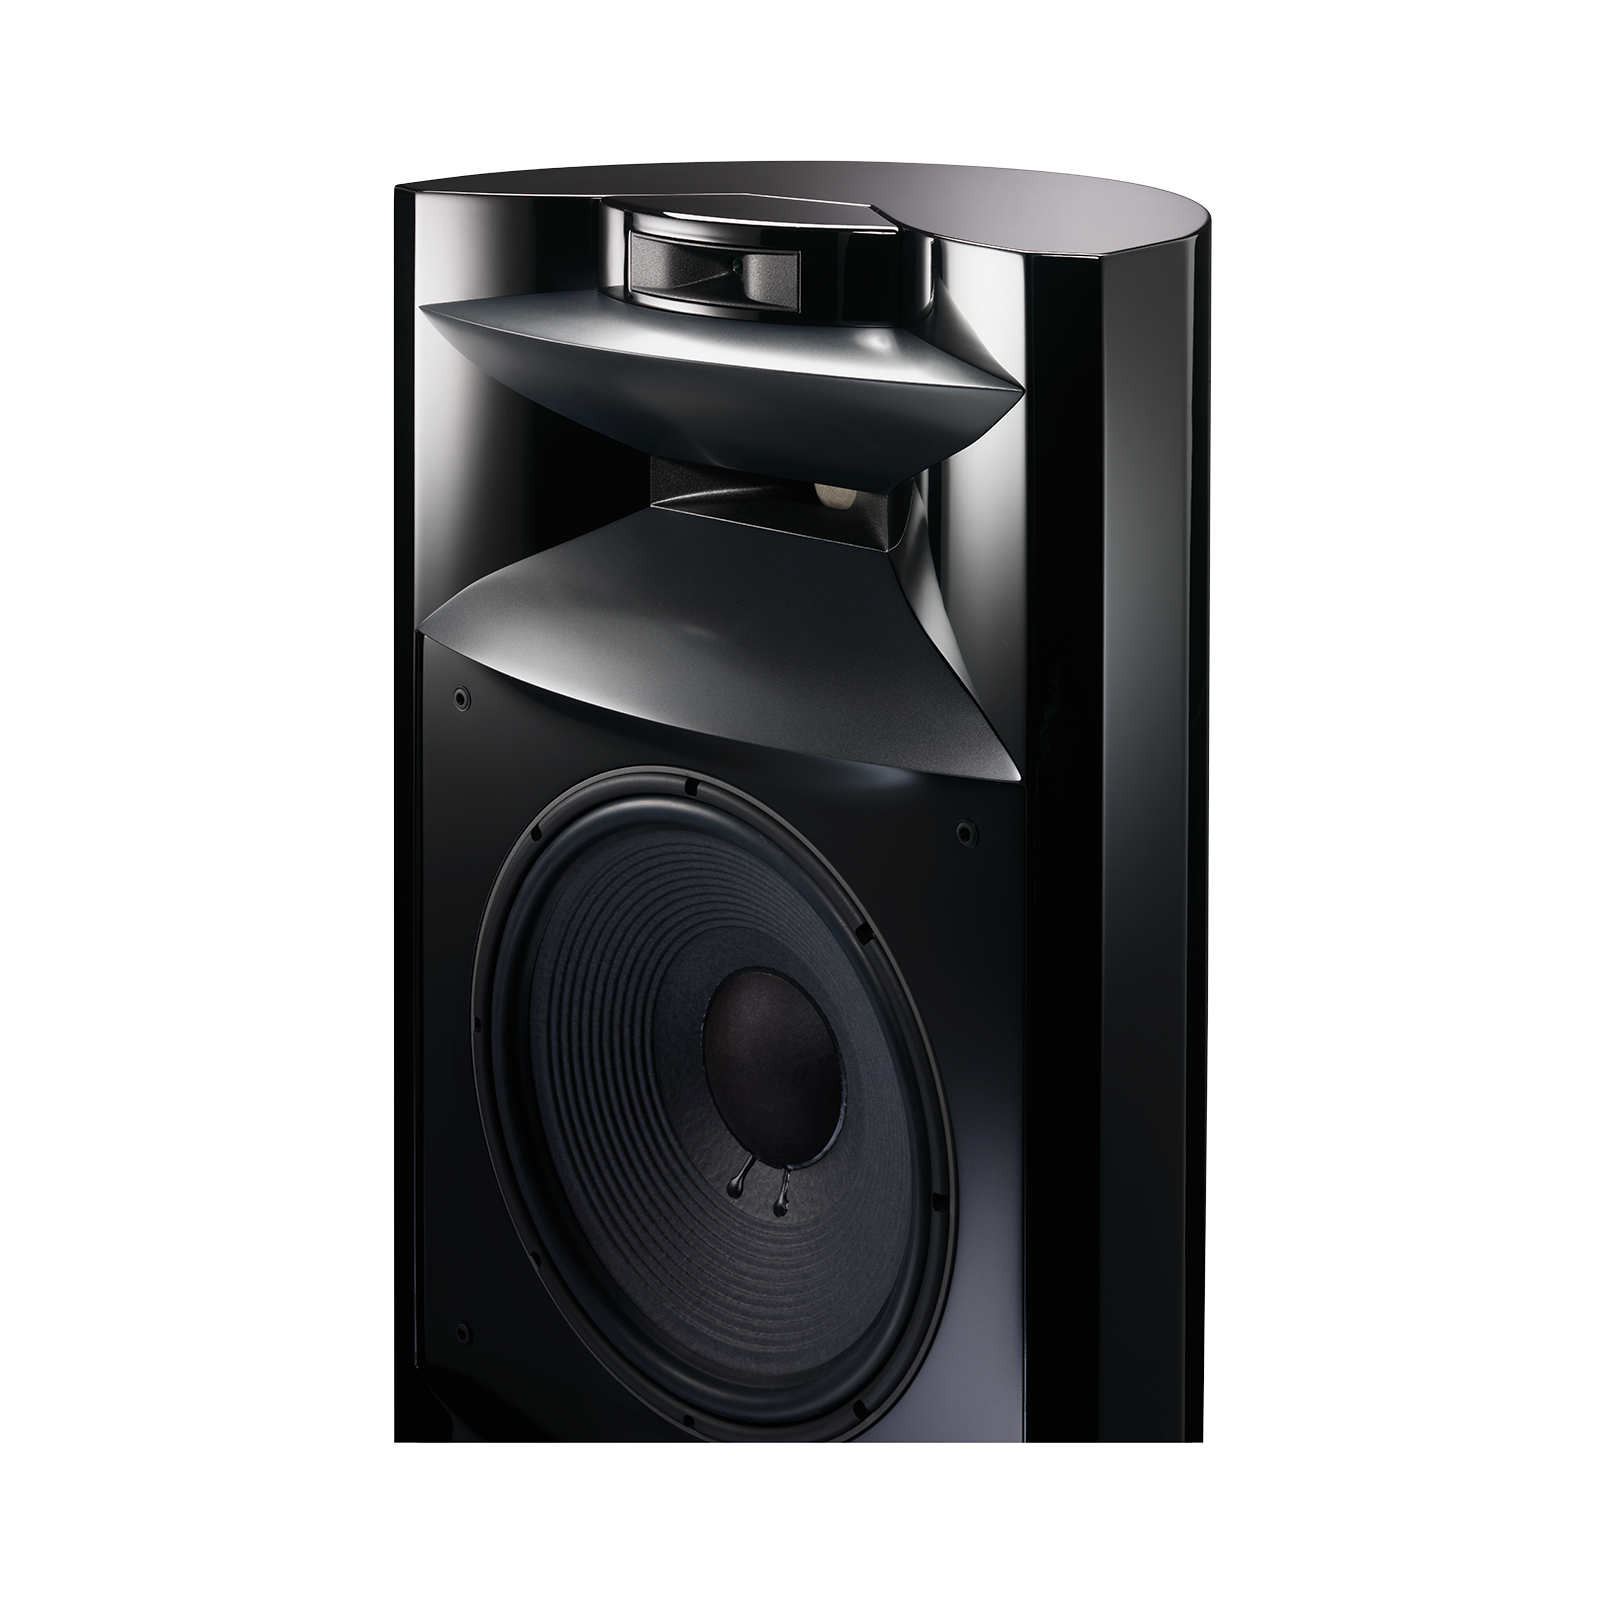 "K2 S9900 - Black Gloss - 3-way 15"" (380mm) Floorstanding Loudspeaker - Detailshot 4"